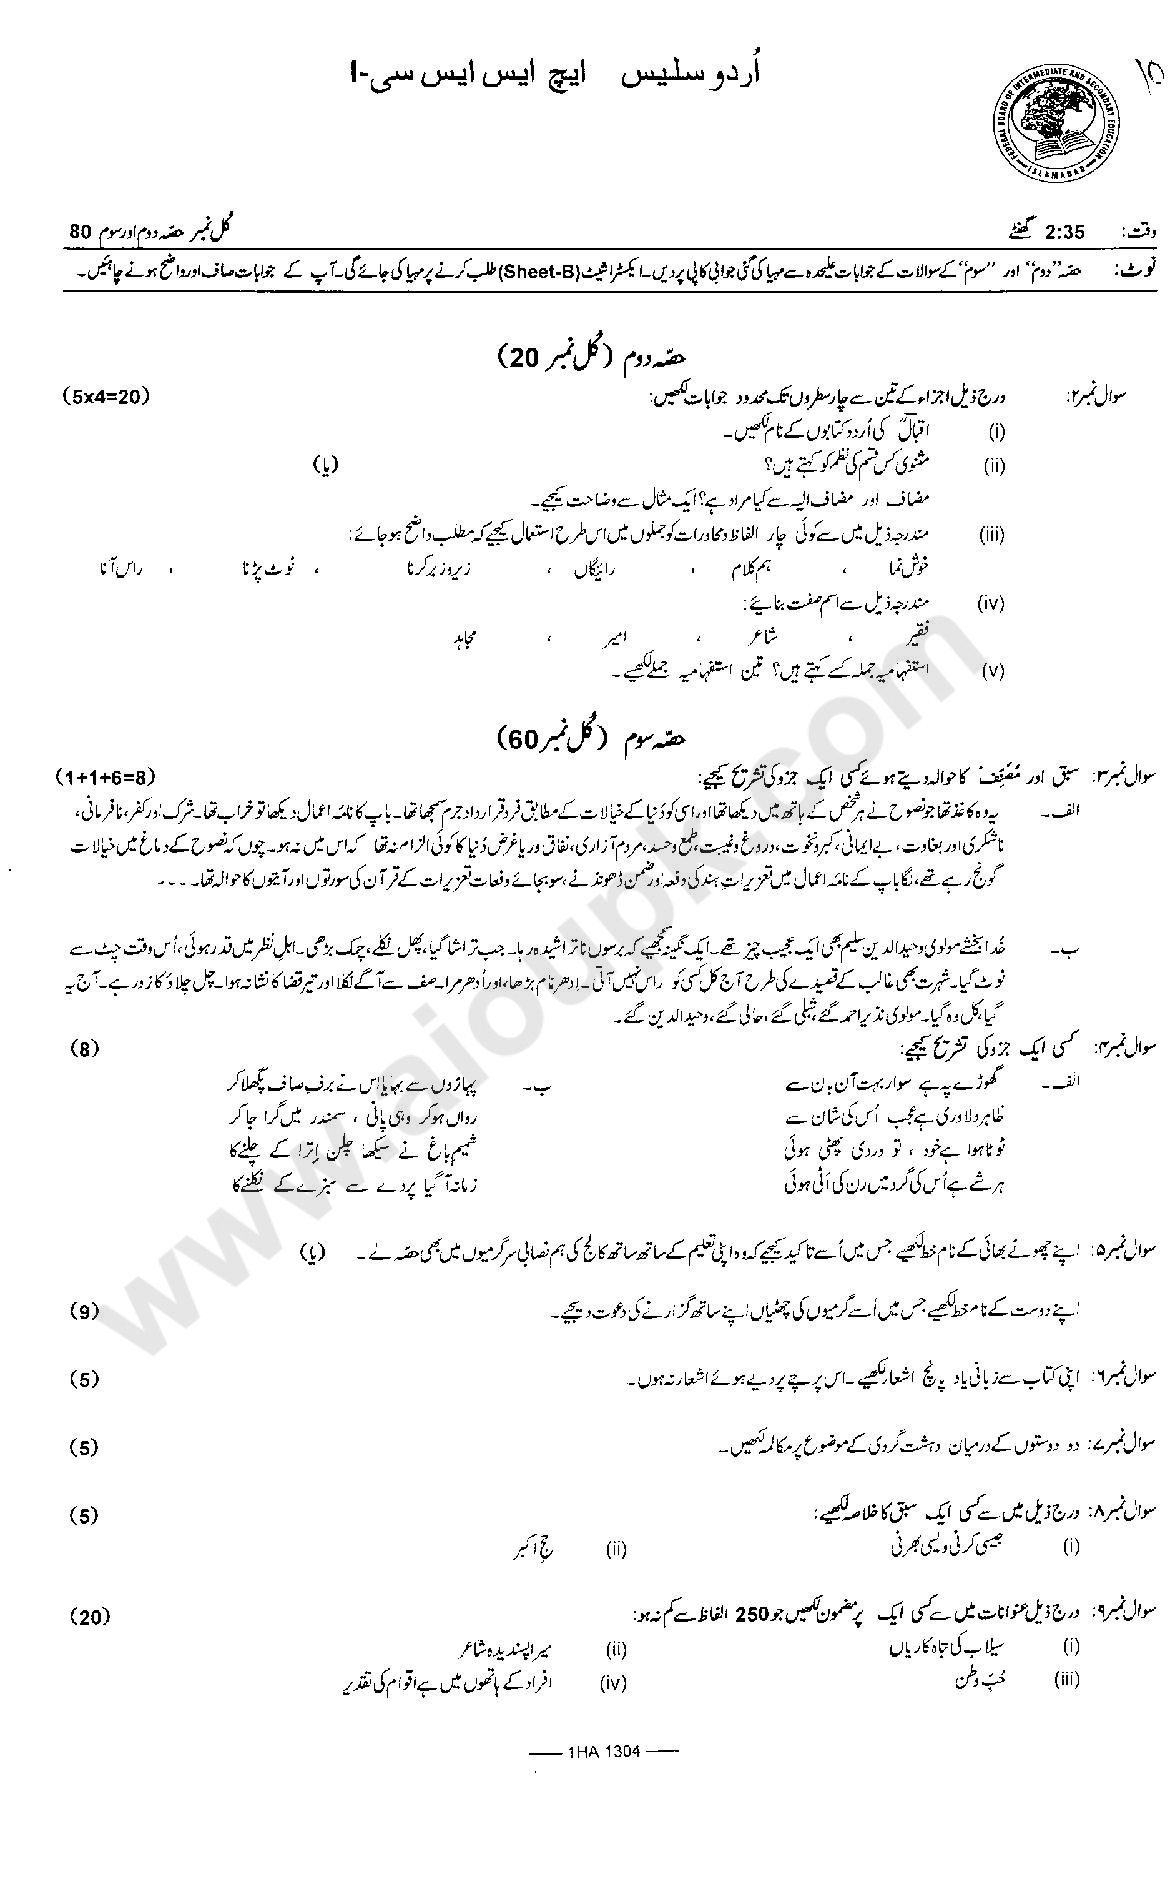 urdu es model past papers for class th federal board  part ldquobrdquo subjective paper of urdu es long answers theory and tashreeh explanation of stanzas and paragraphs includes in this section of papers